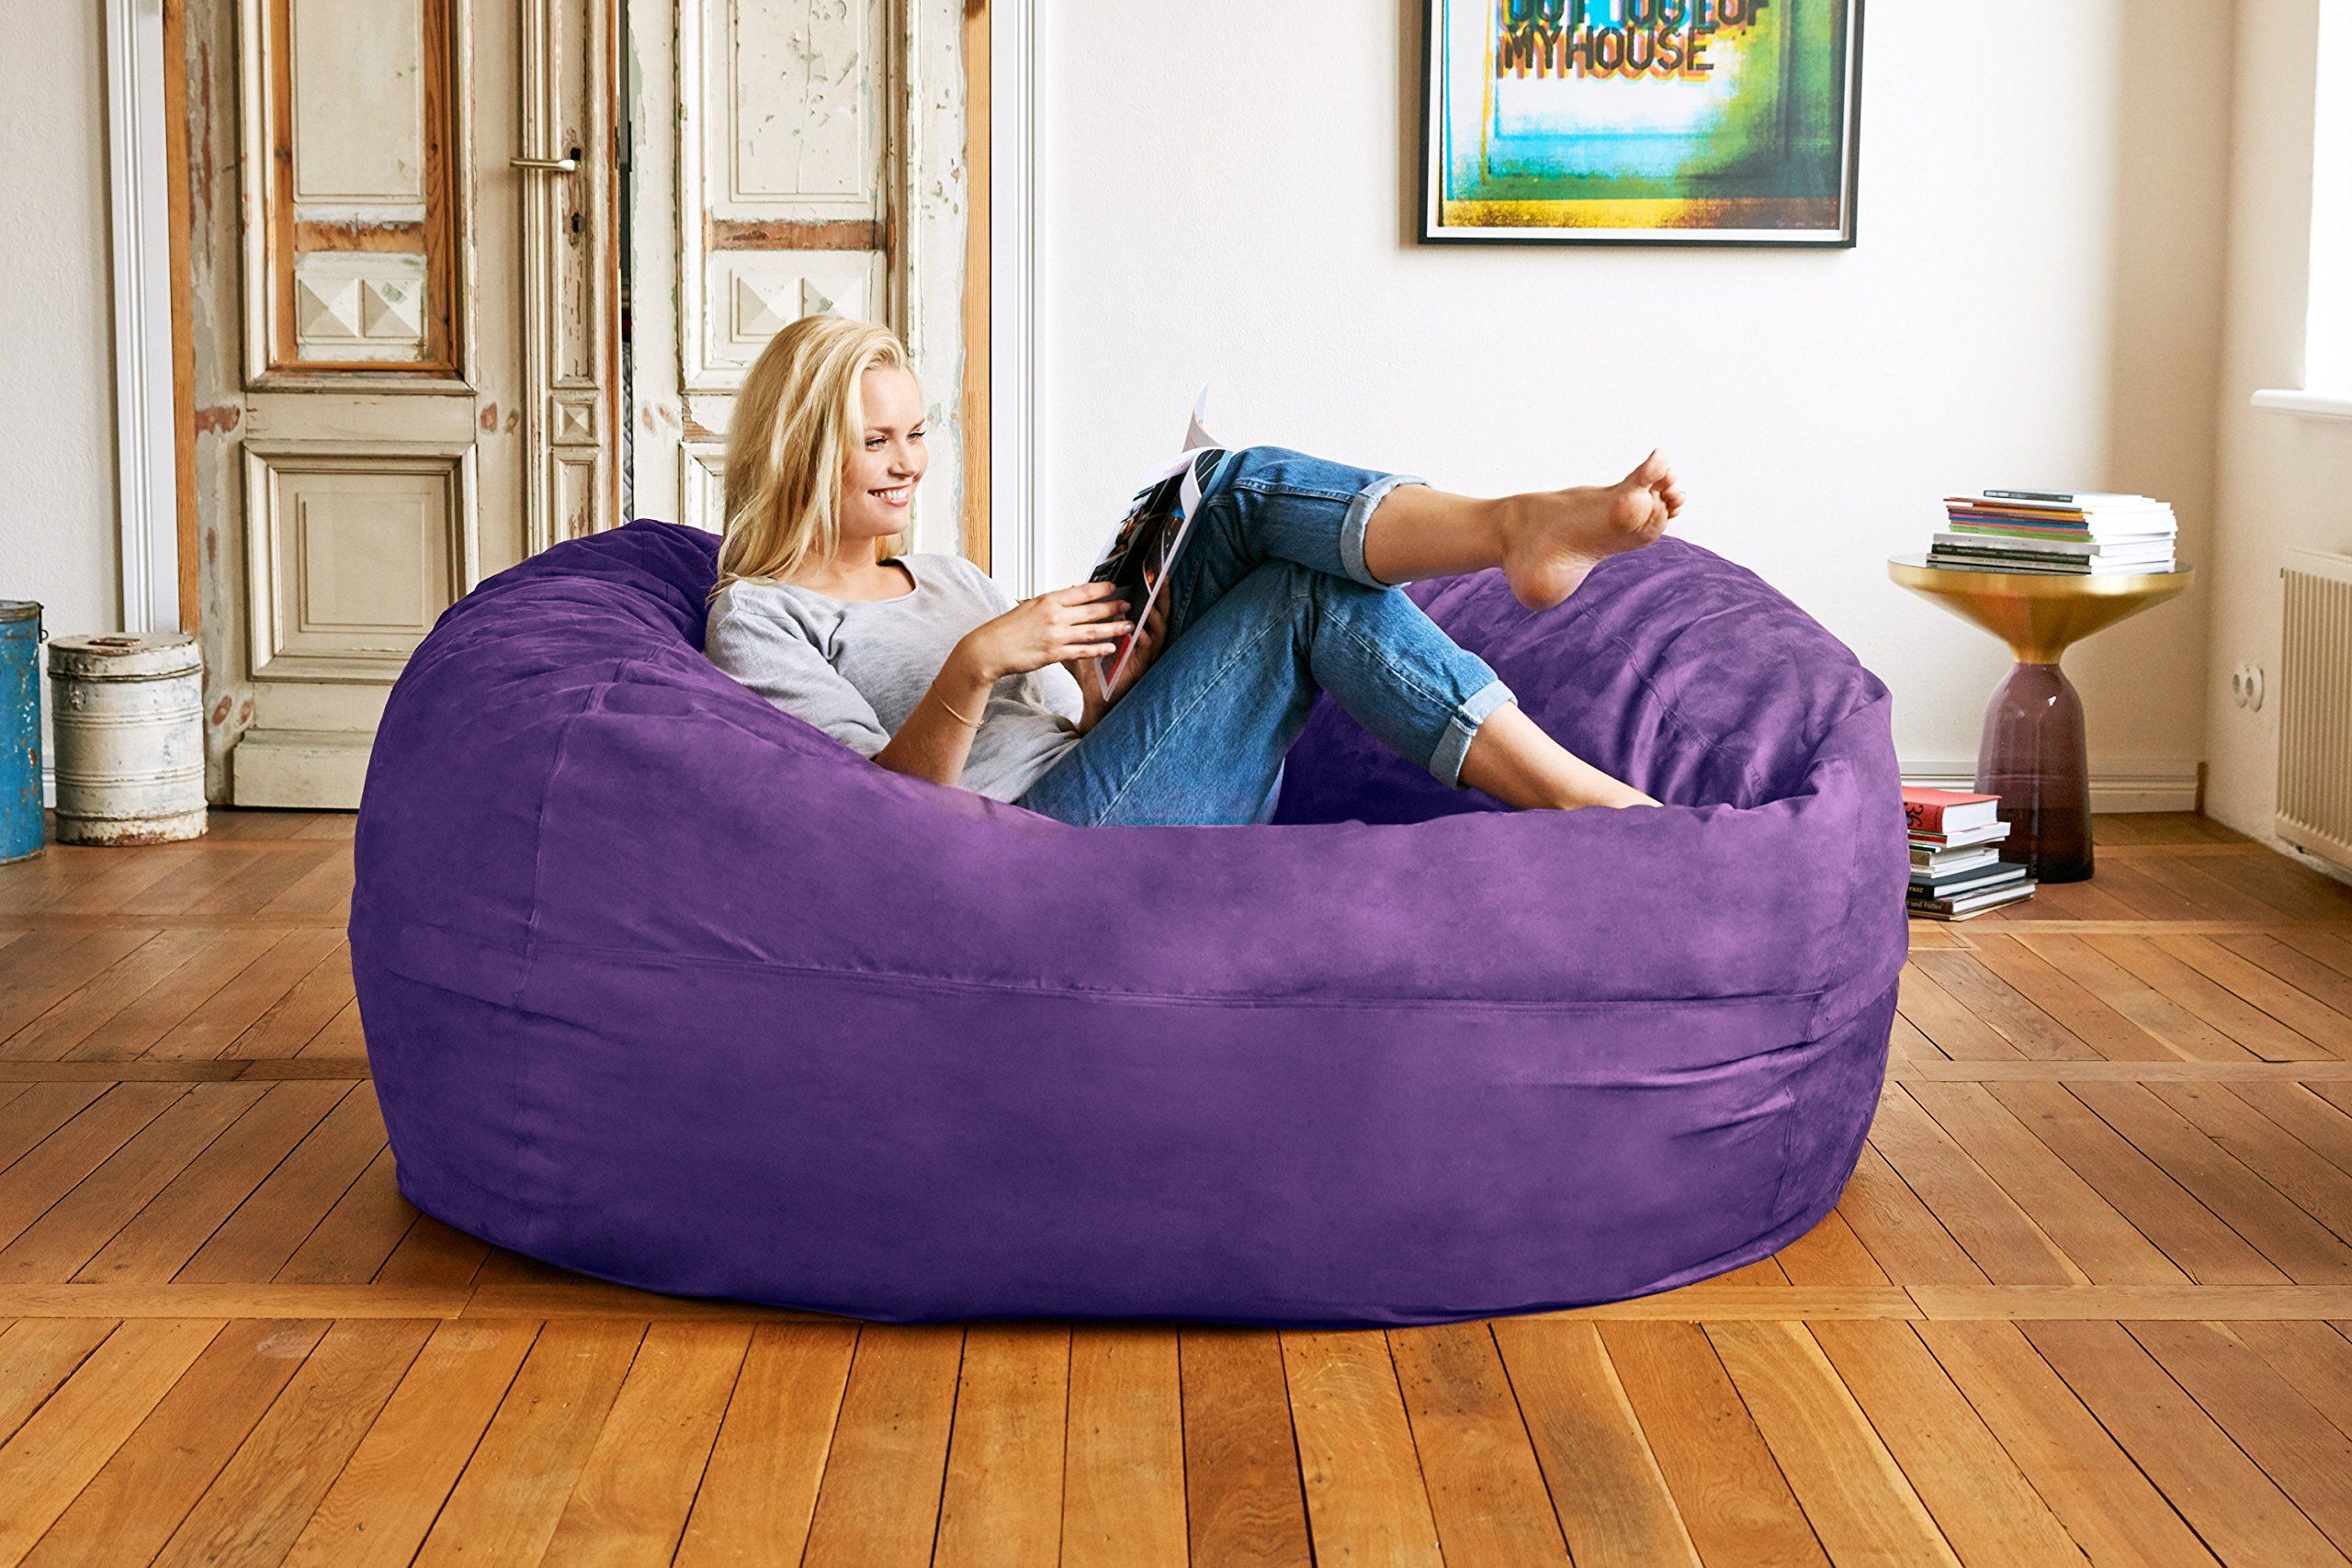 Lumaland Luxury 6foot Bean Bag Chair With Microsuede Cover Purple Machine Washable Big Size Sofa And Giant Lounger Furniture For Kids T Bean Bag Chair Furniture